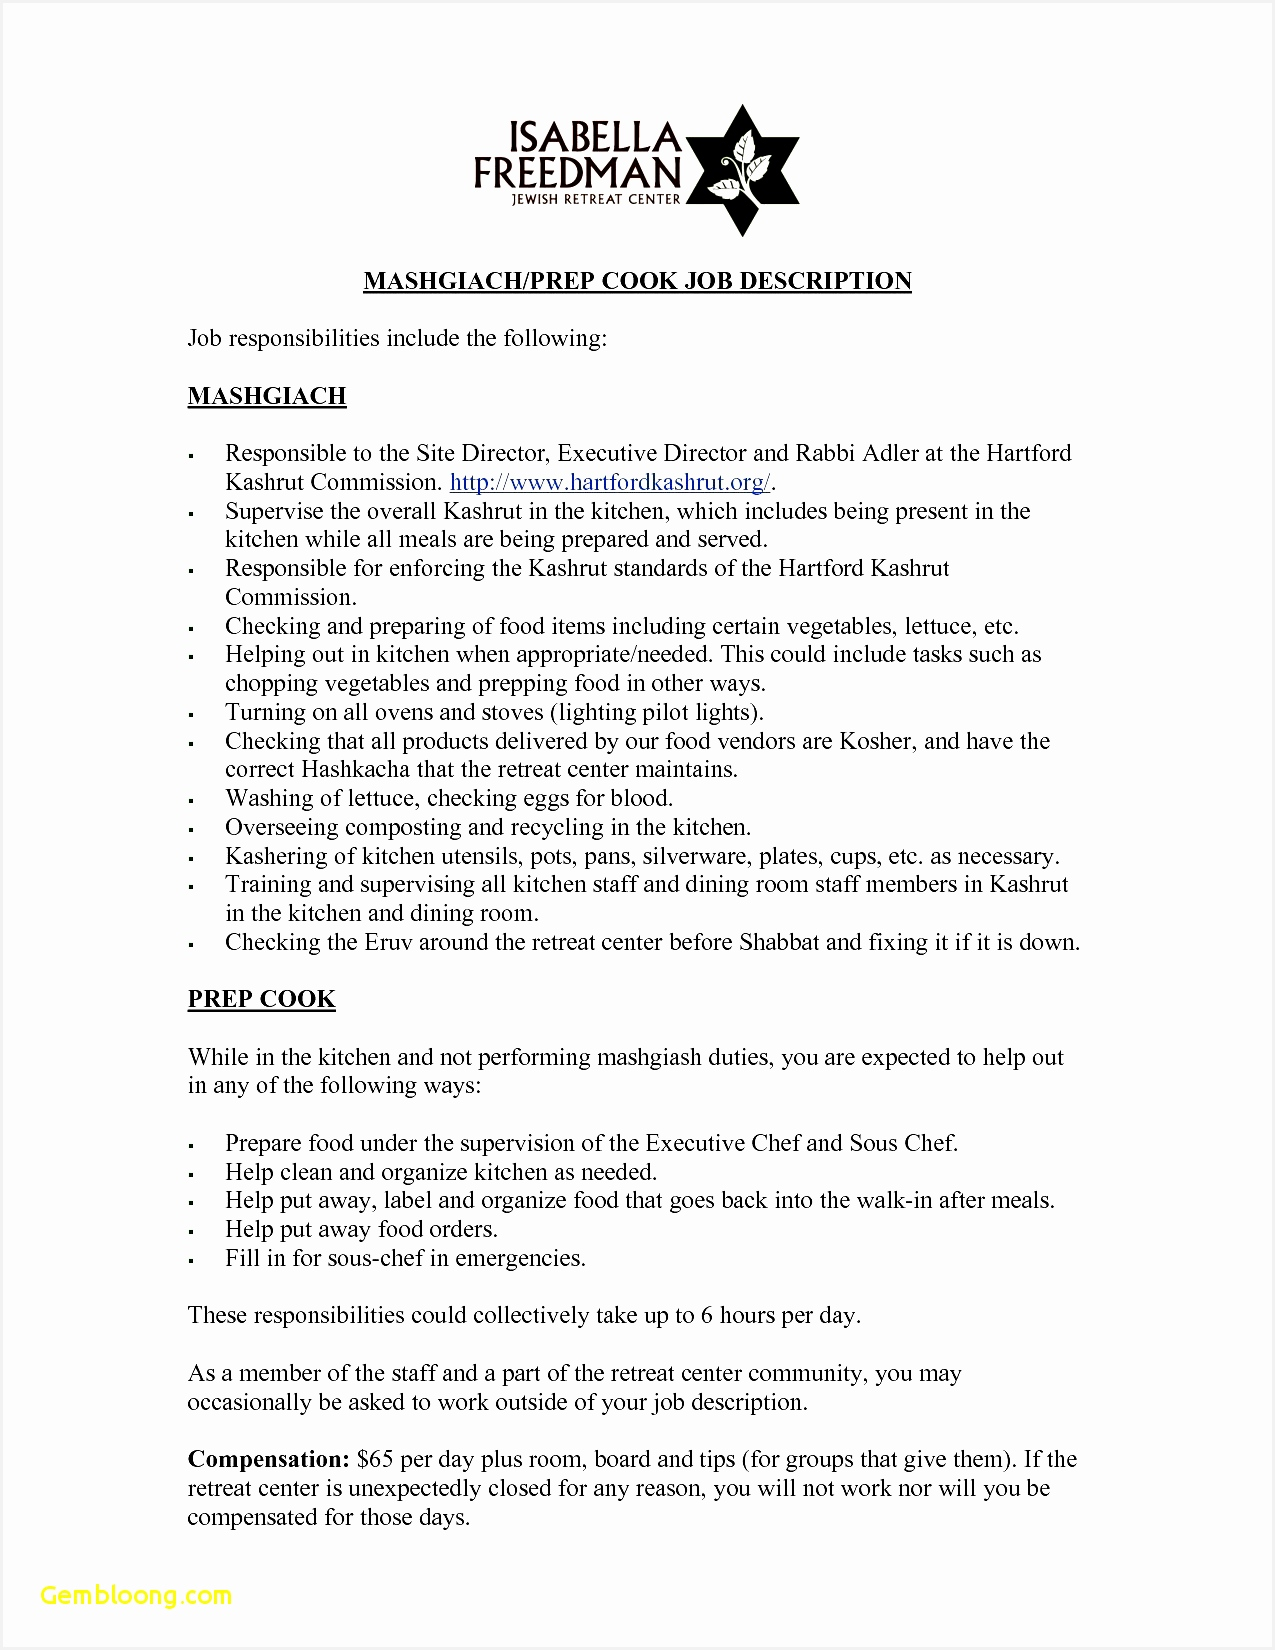 Simple Resume Template Free Beautiful Acting Resume Templates Free Download Actor Resume Template Fresh Od16501275